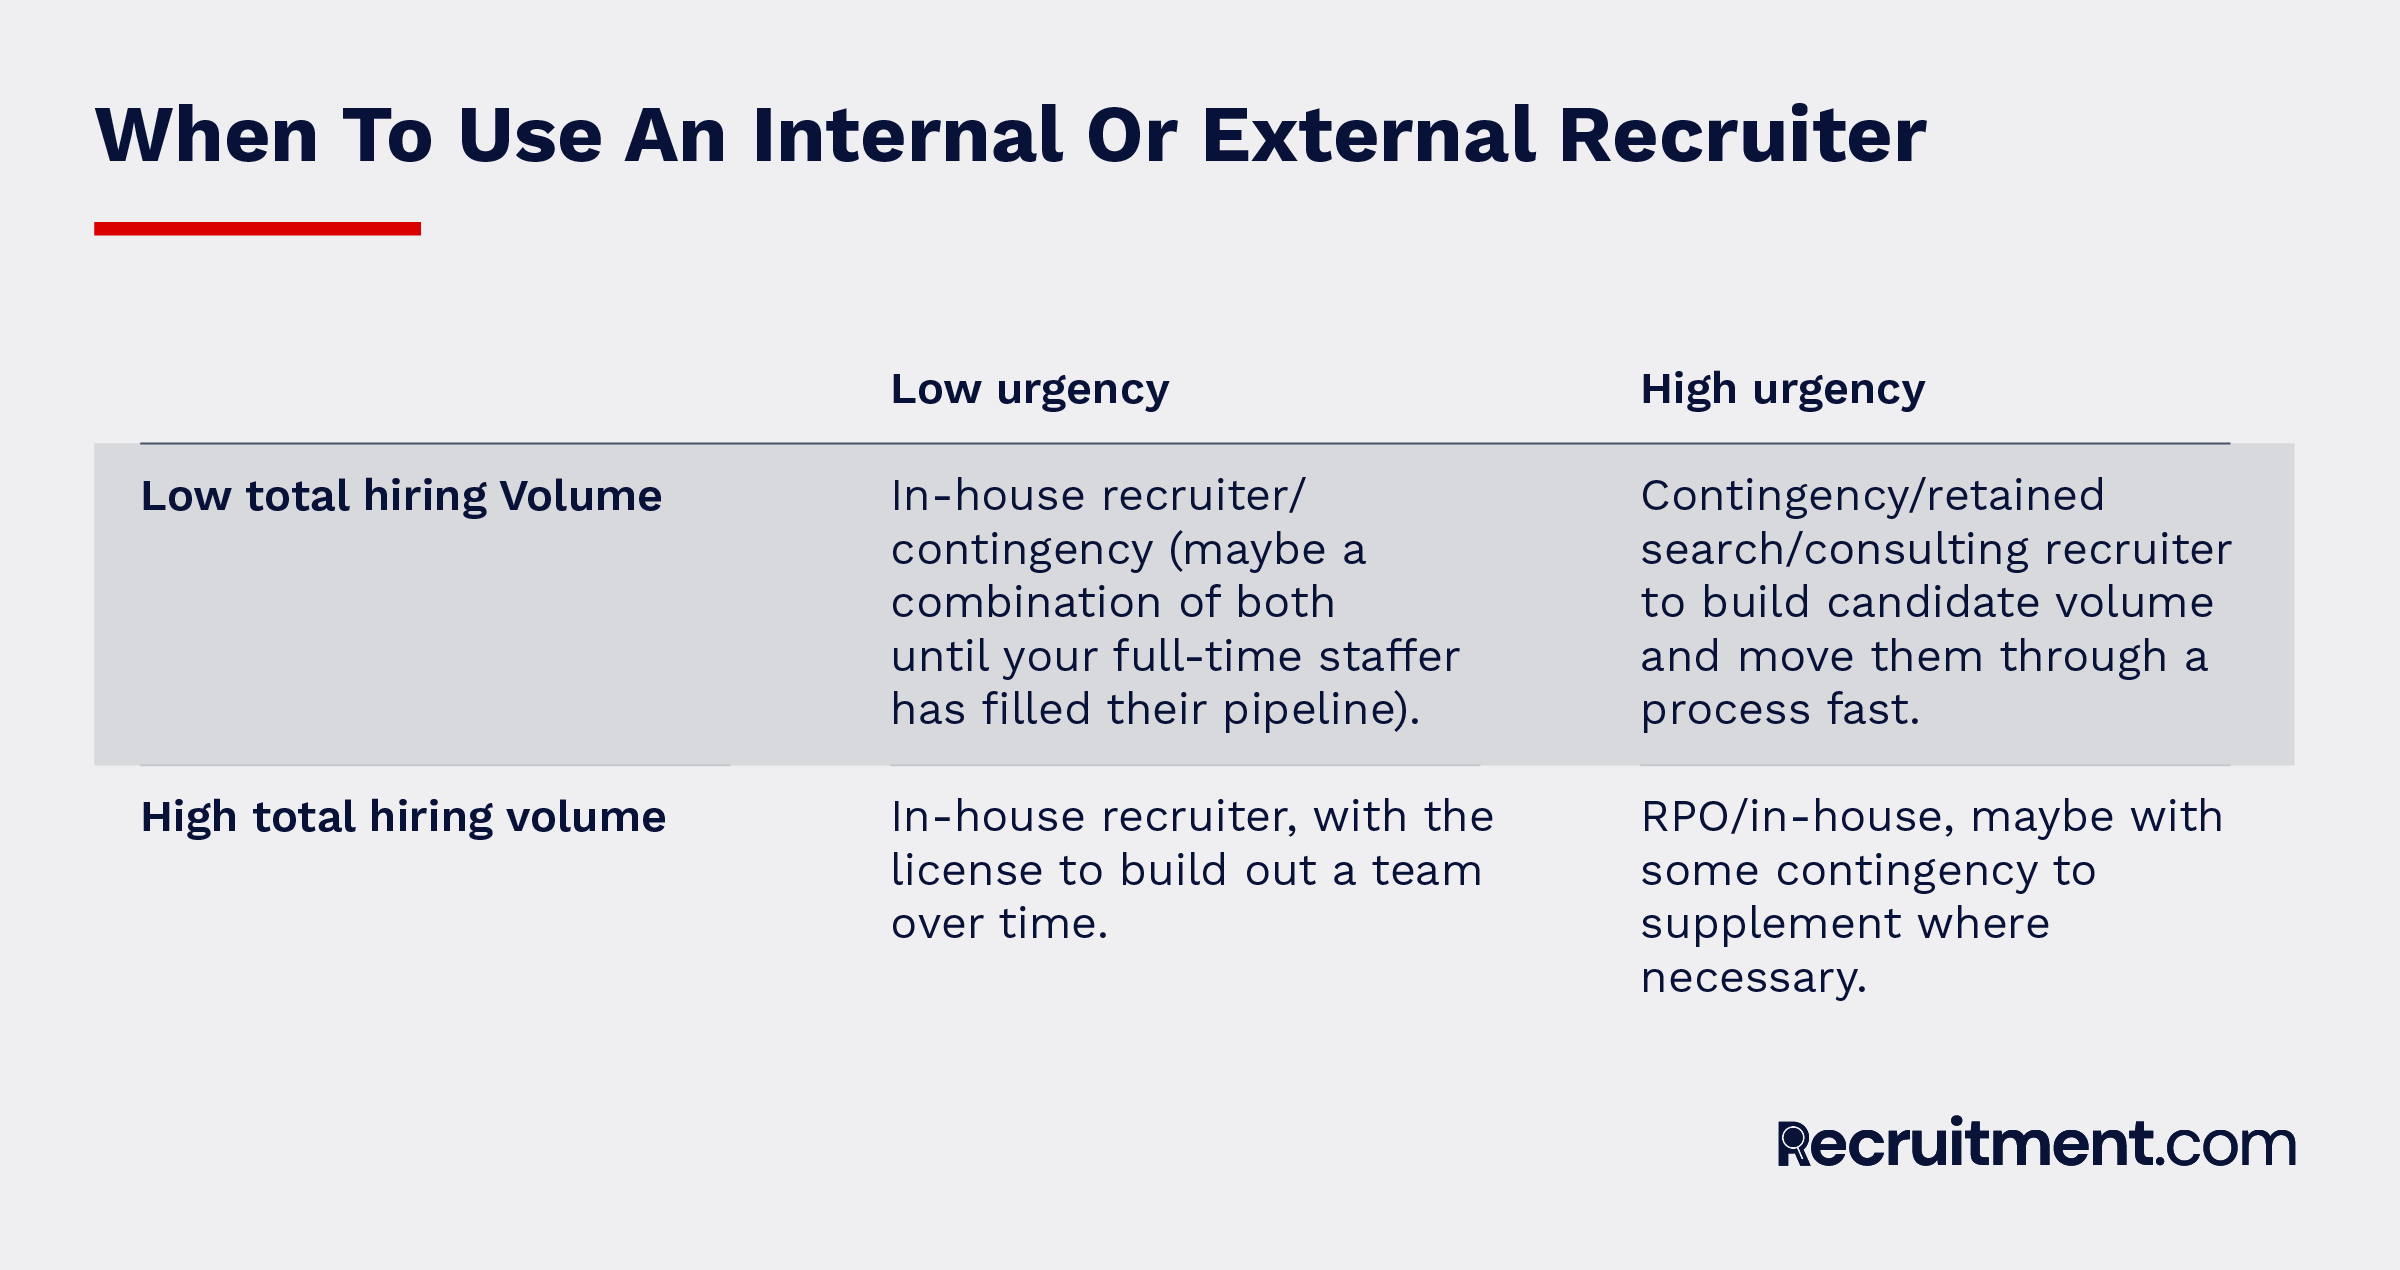 When to use an internal or external recruiter